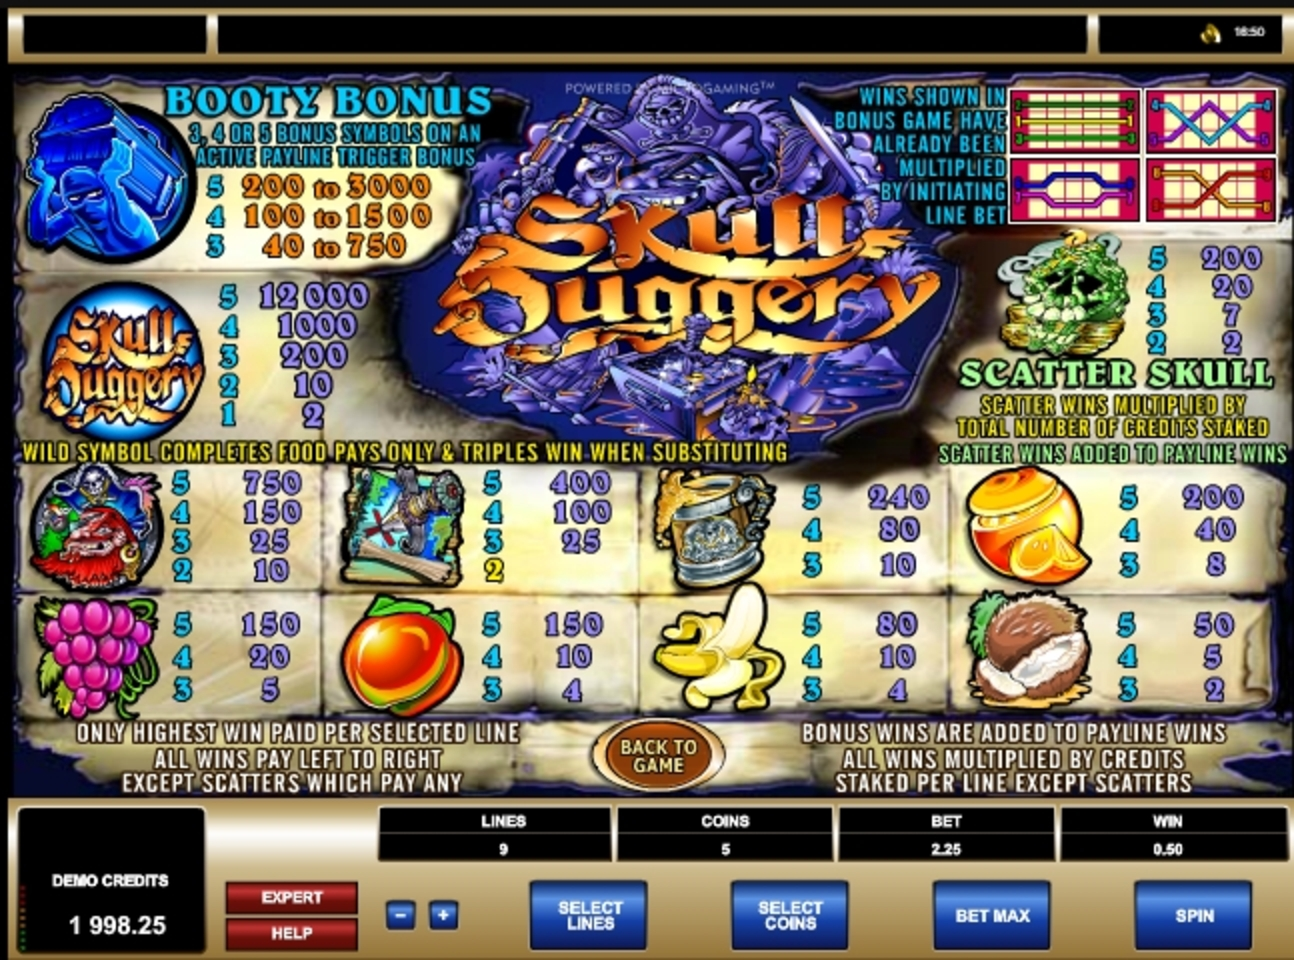 Info of Skull Duggery Slot Game by Microgaming